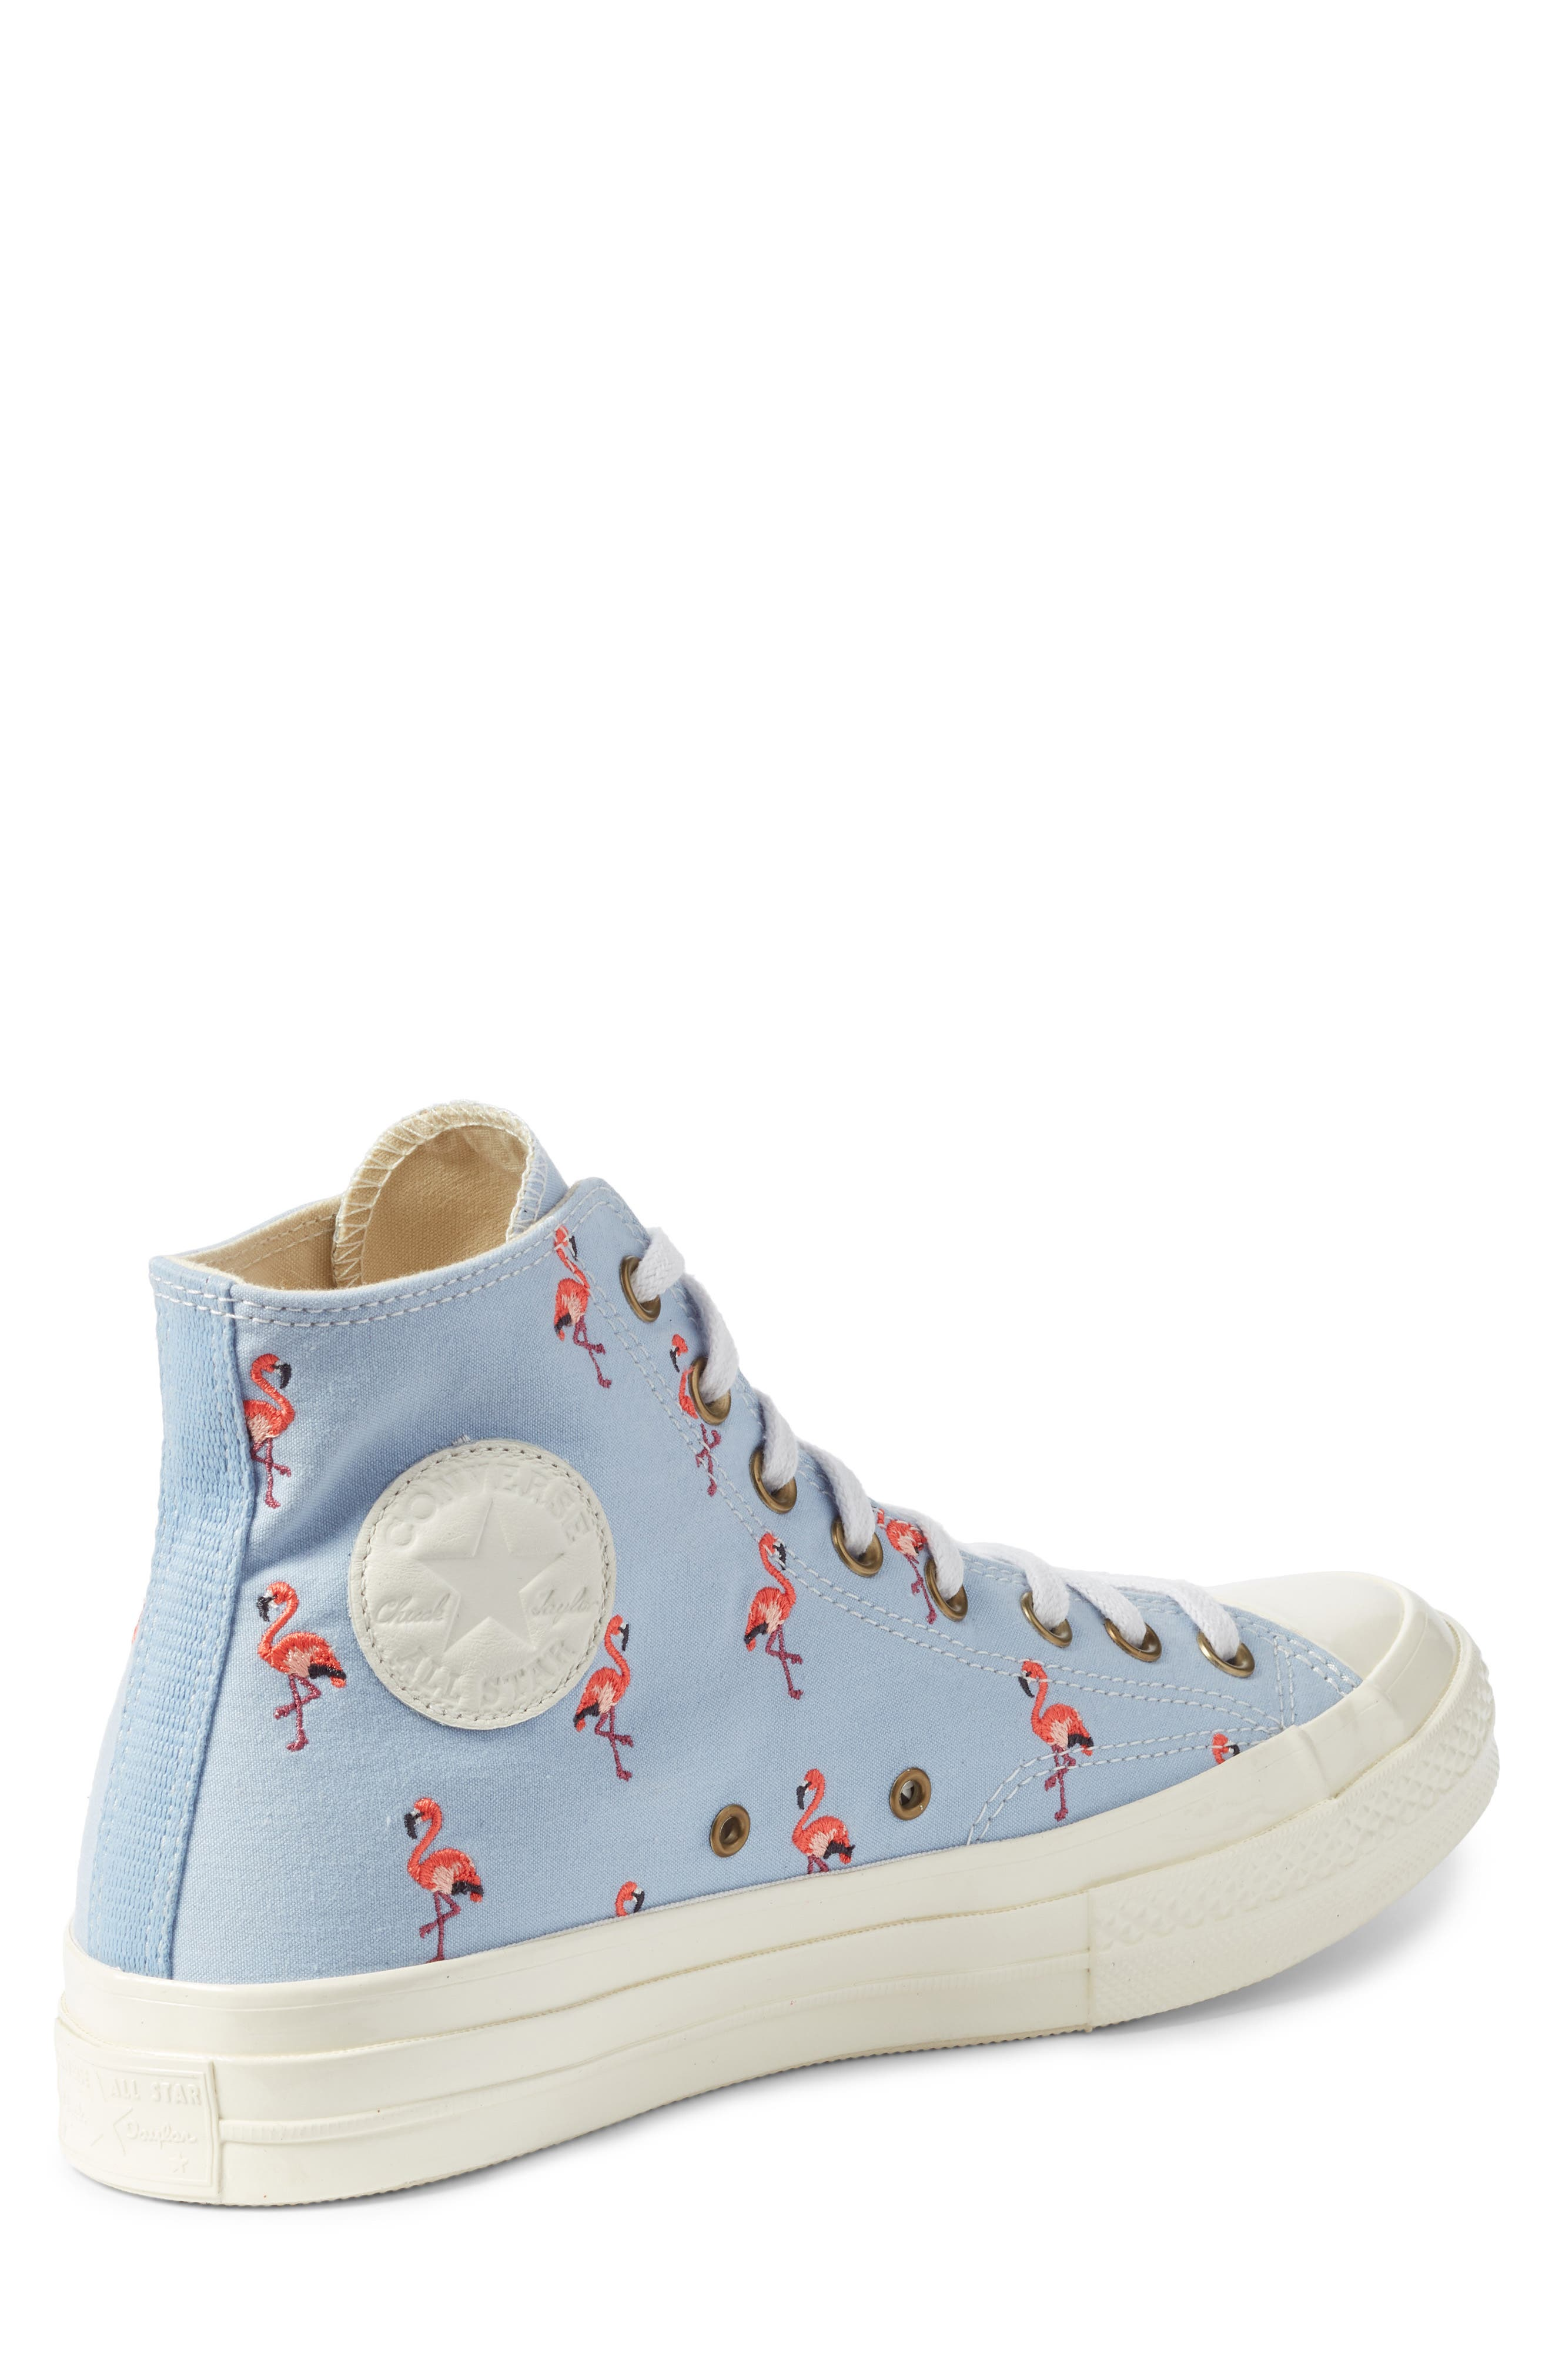 Chuck Taylor<sup>®</sup> All Star<sup>®</sup> Chuck 70 Flamingo Sneaker,                             Alternate thumbnail 2, color,                             Blue Chili